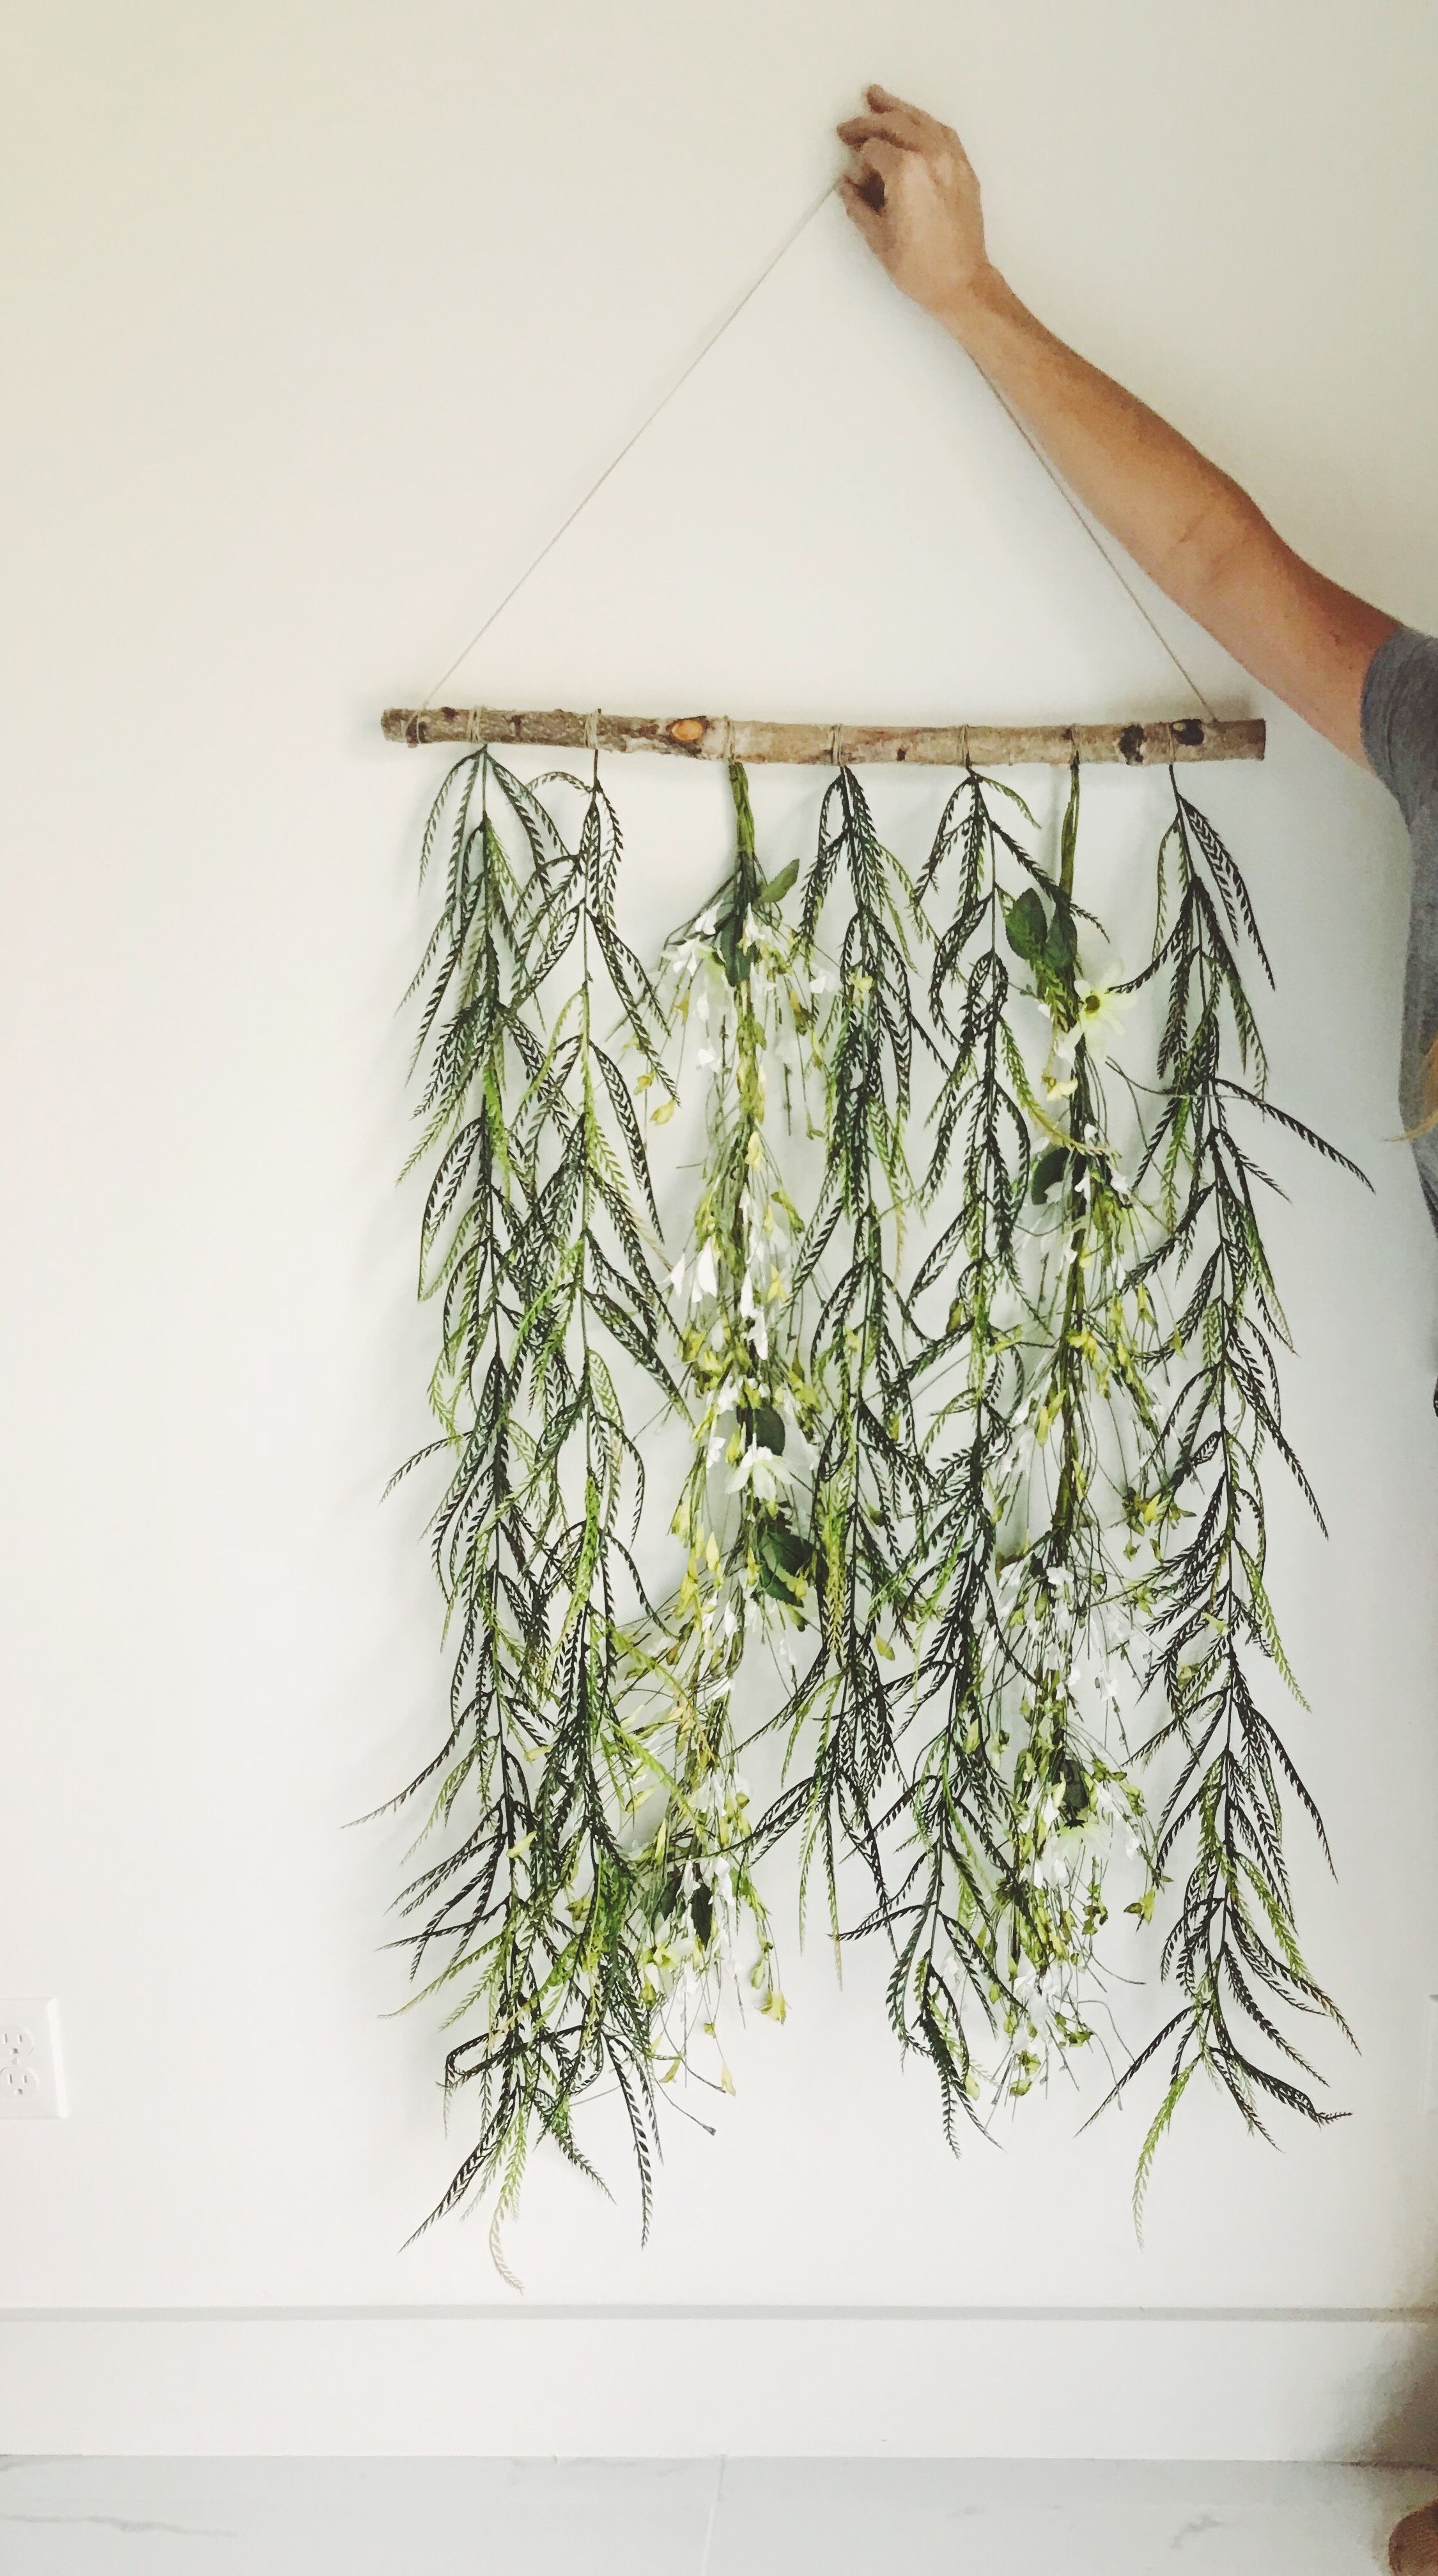 Easy Dyi Decoration Of Greenery And Flowers Hanging Off A Branch On A Wall All Supplies From A Craft Sto Greenery Wall Decor Greenery Decor Wall Decor Bedroom